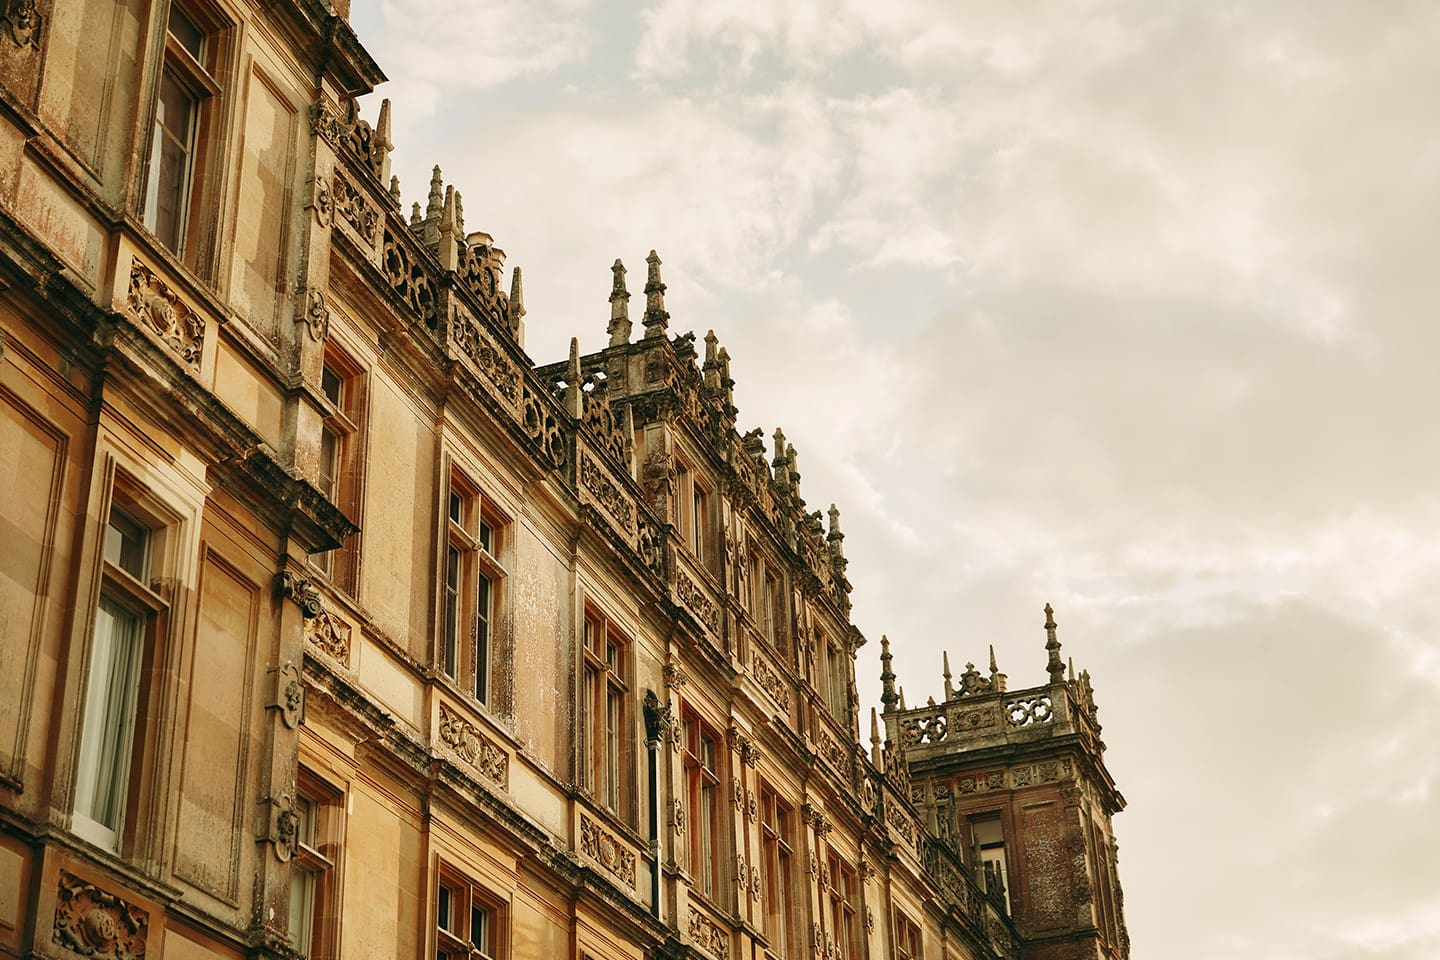 Immerse yourself in the rich history and heritage of Highclere Castle